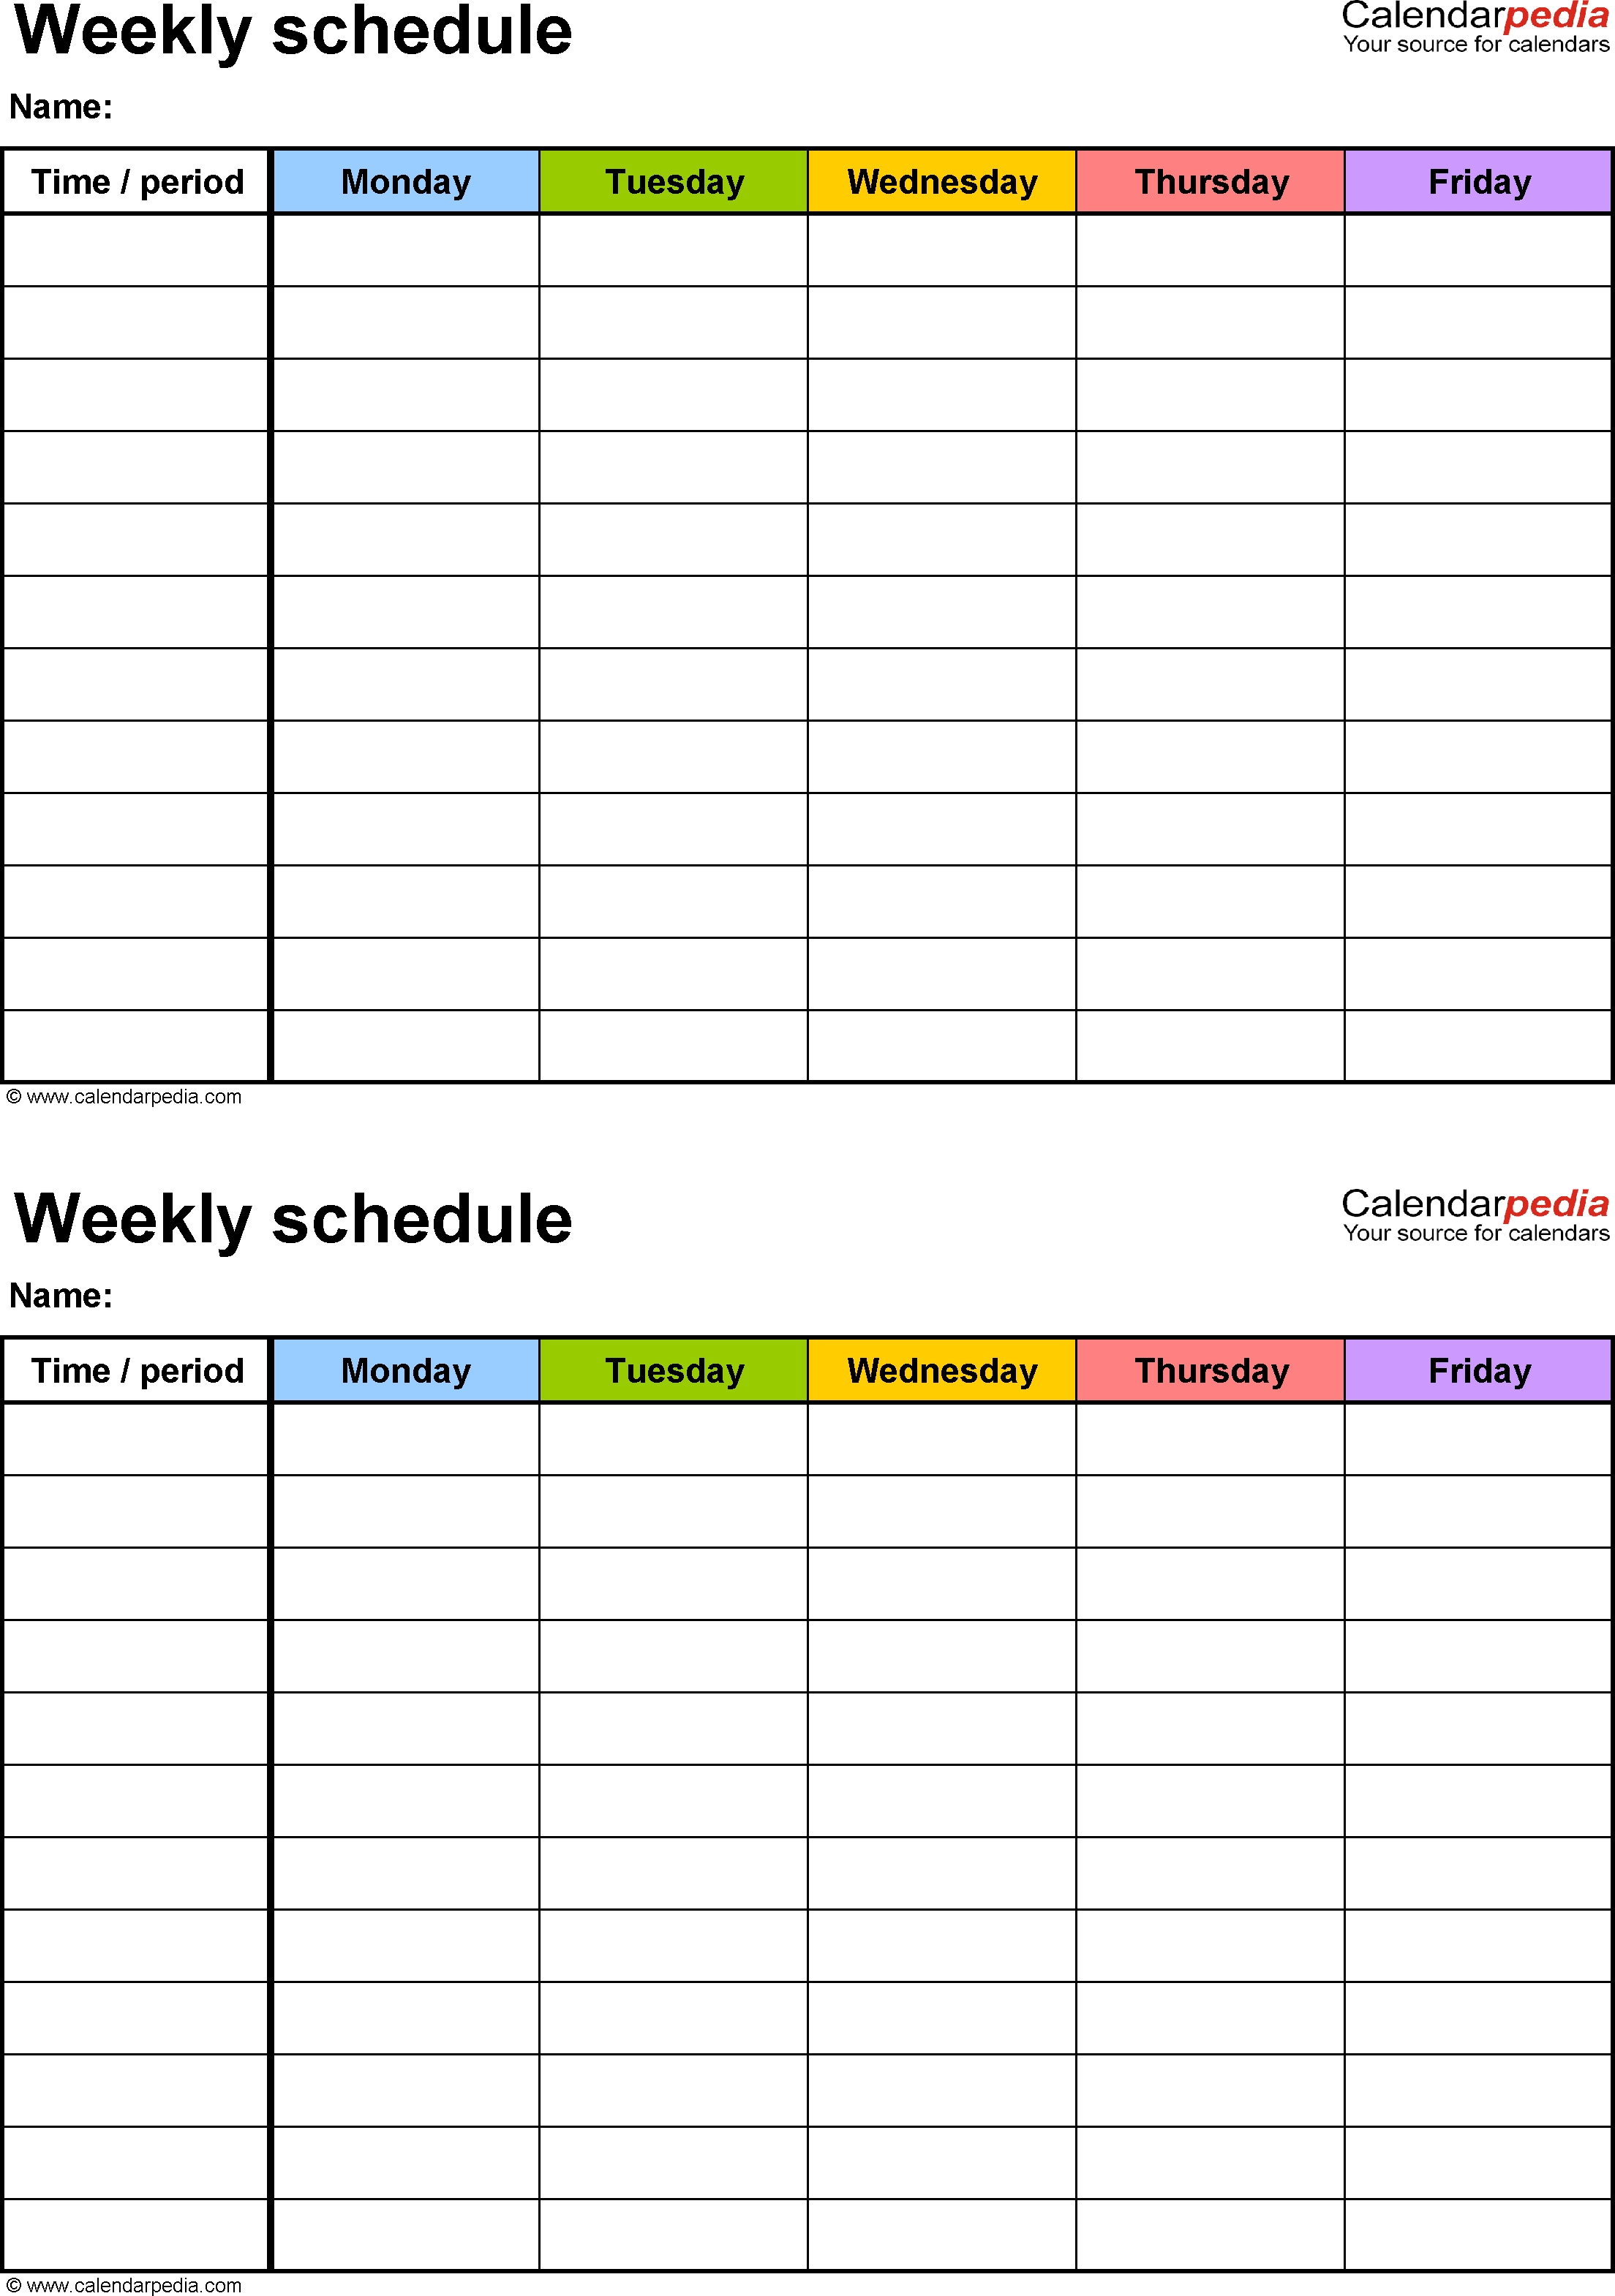 Free Weekly Schedule Templates For Word - 18 Templates  7-Day Week Blank Calendar Template